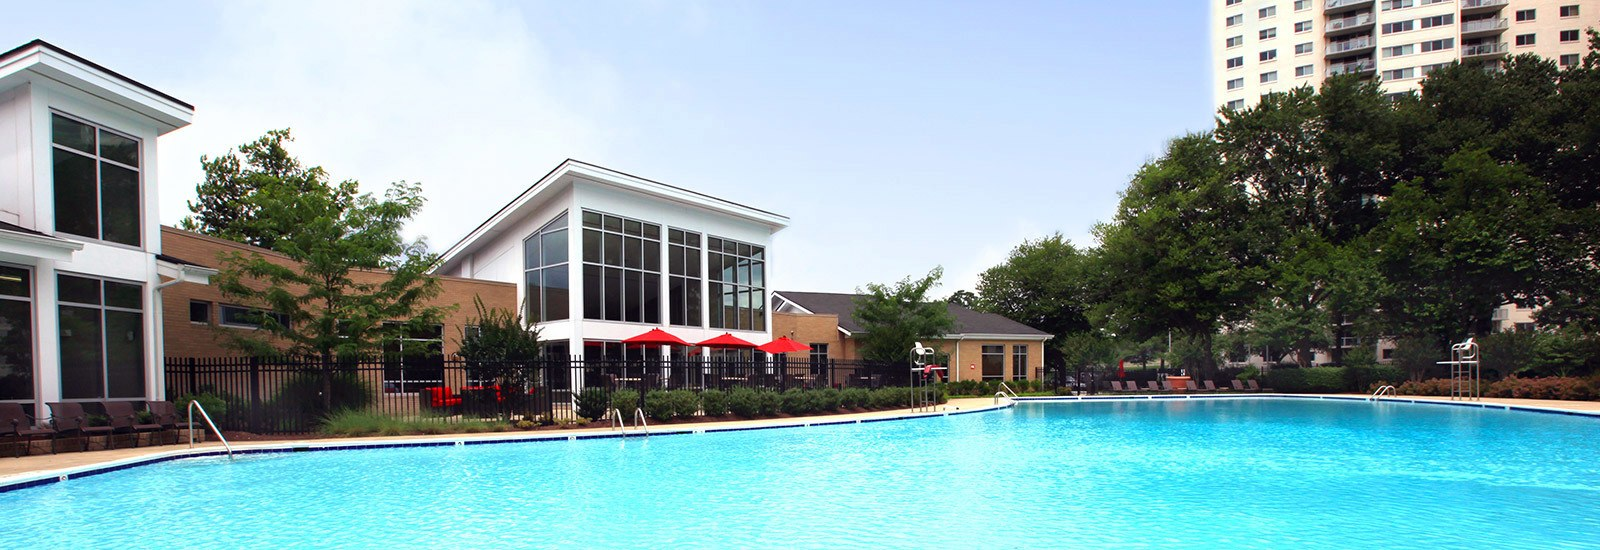 The Enclave Apartments in Silver Springs, Maryland